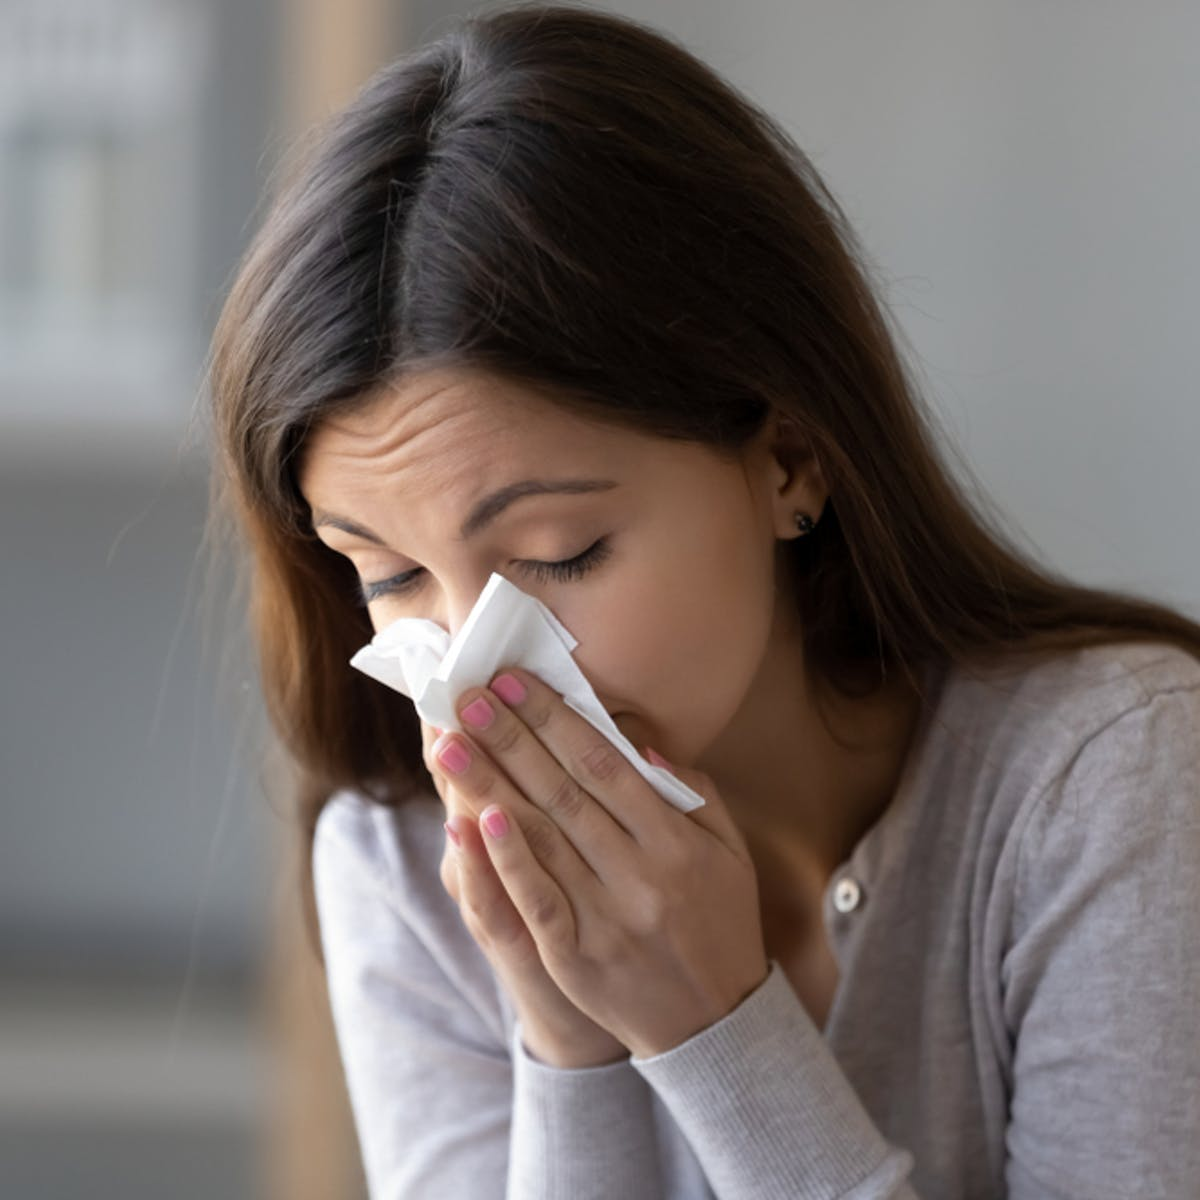 Sniffles Sneezing And Cough How To Tell If It S A Simple Allergy Rather Than The Virus